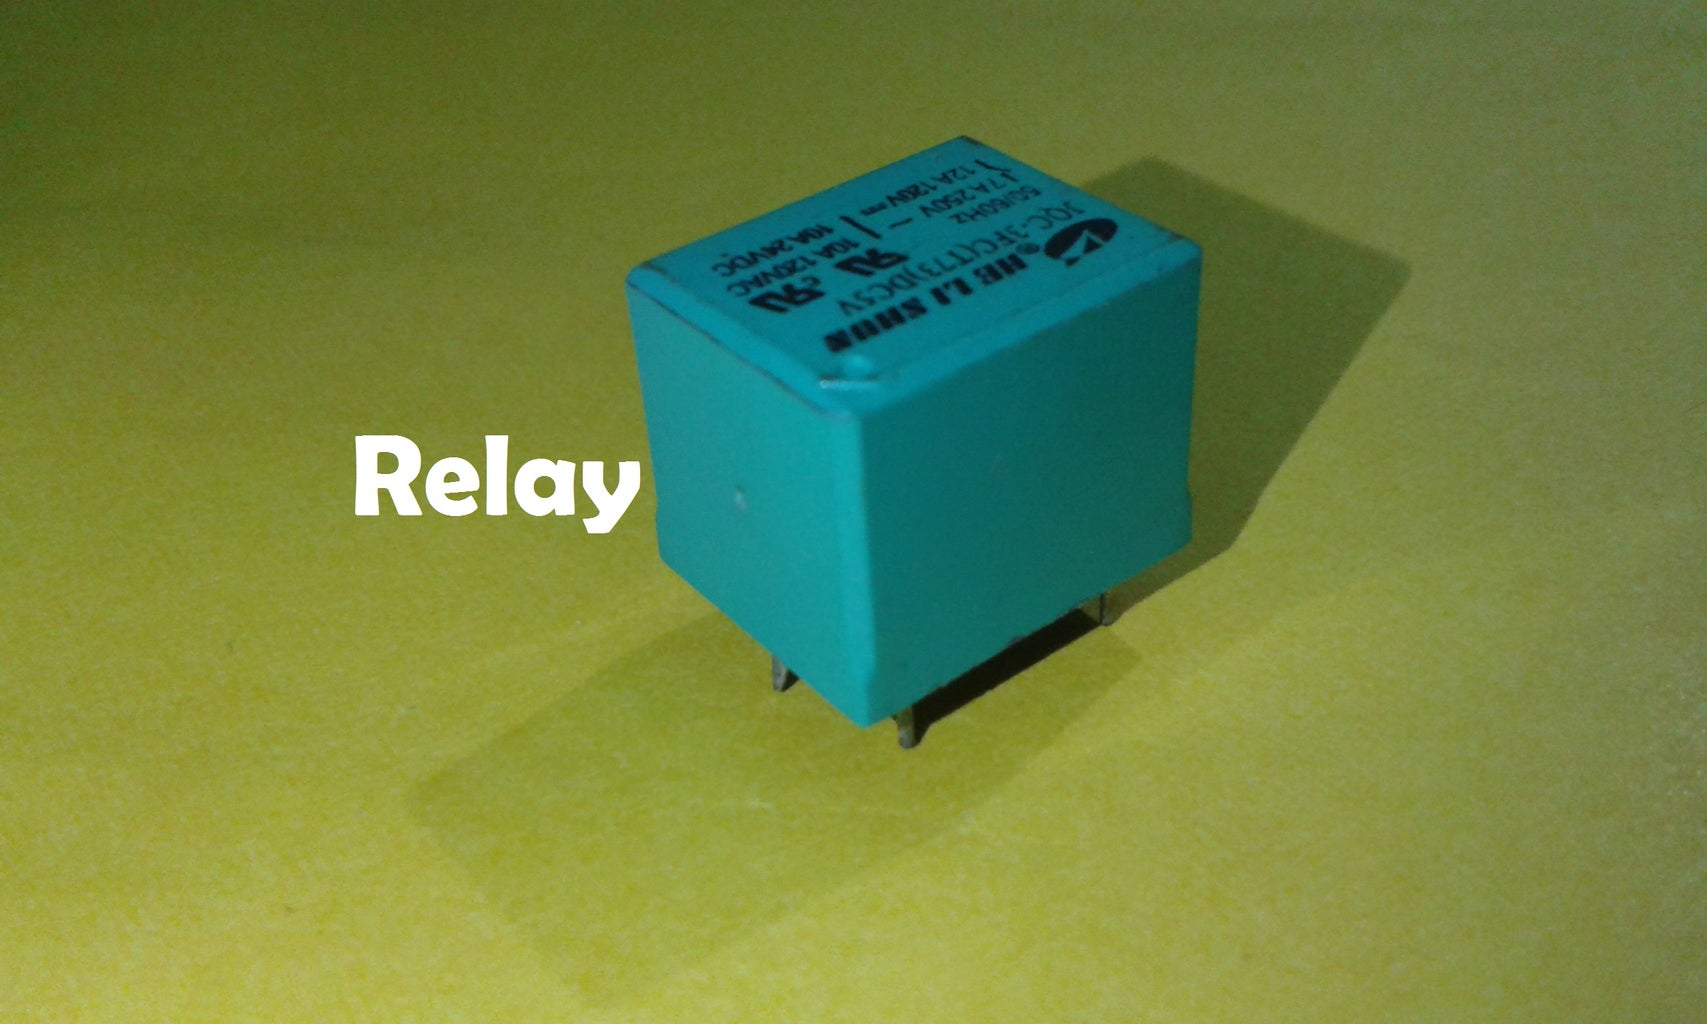 Make the Relay